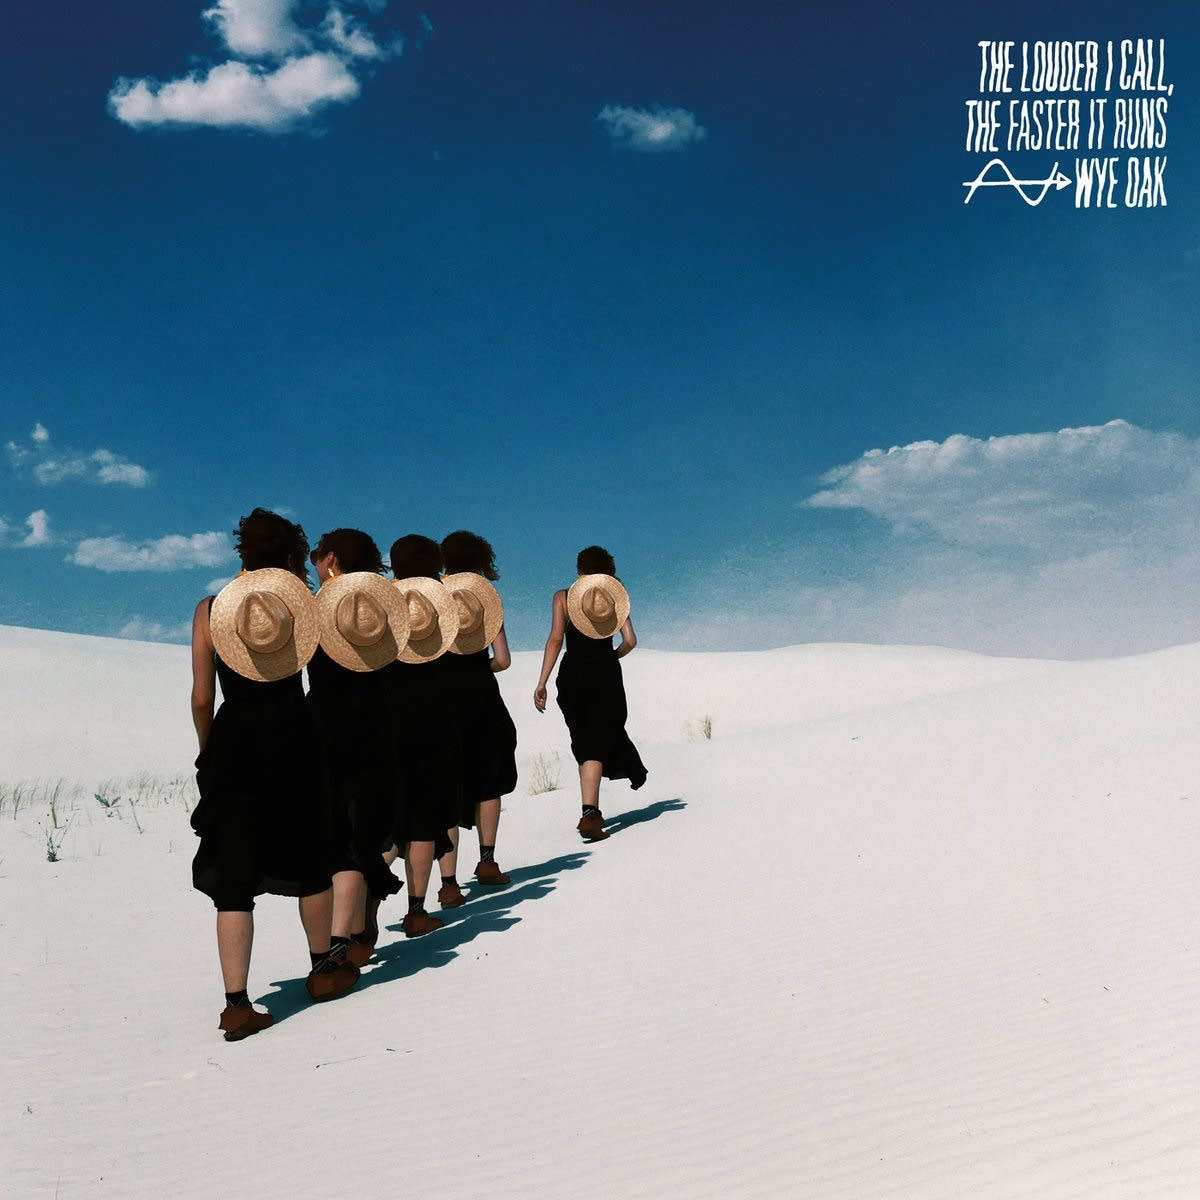 Wye Oak, 'The Louder I Call, The Faster It Runs'